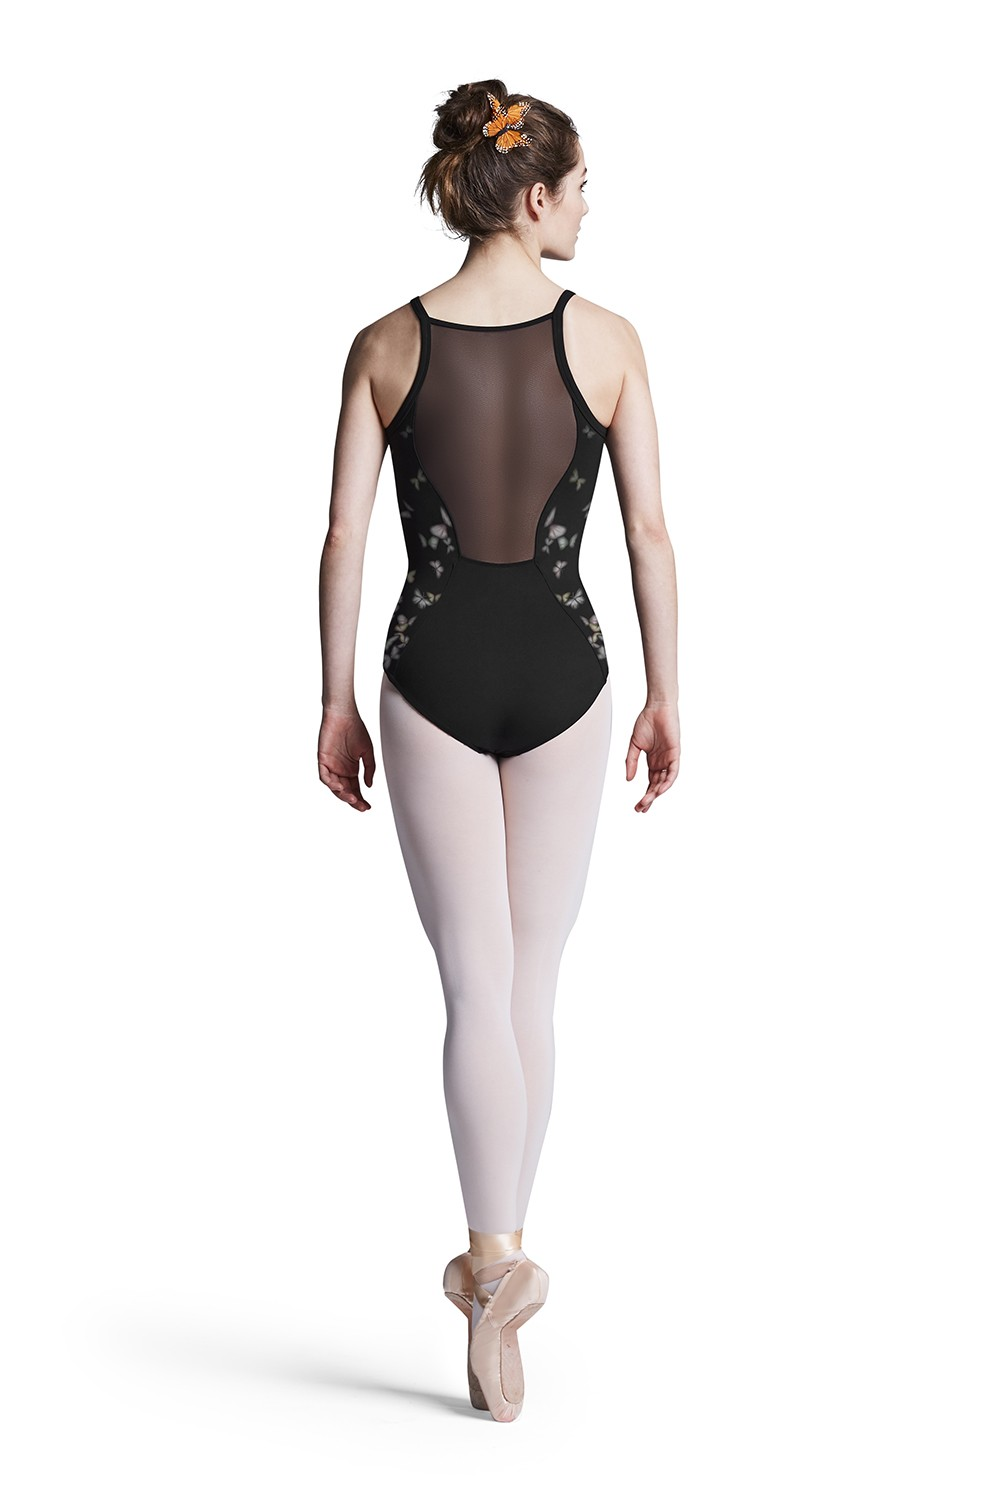 Delaney Womens Camisole Leotards